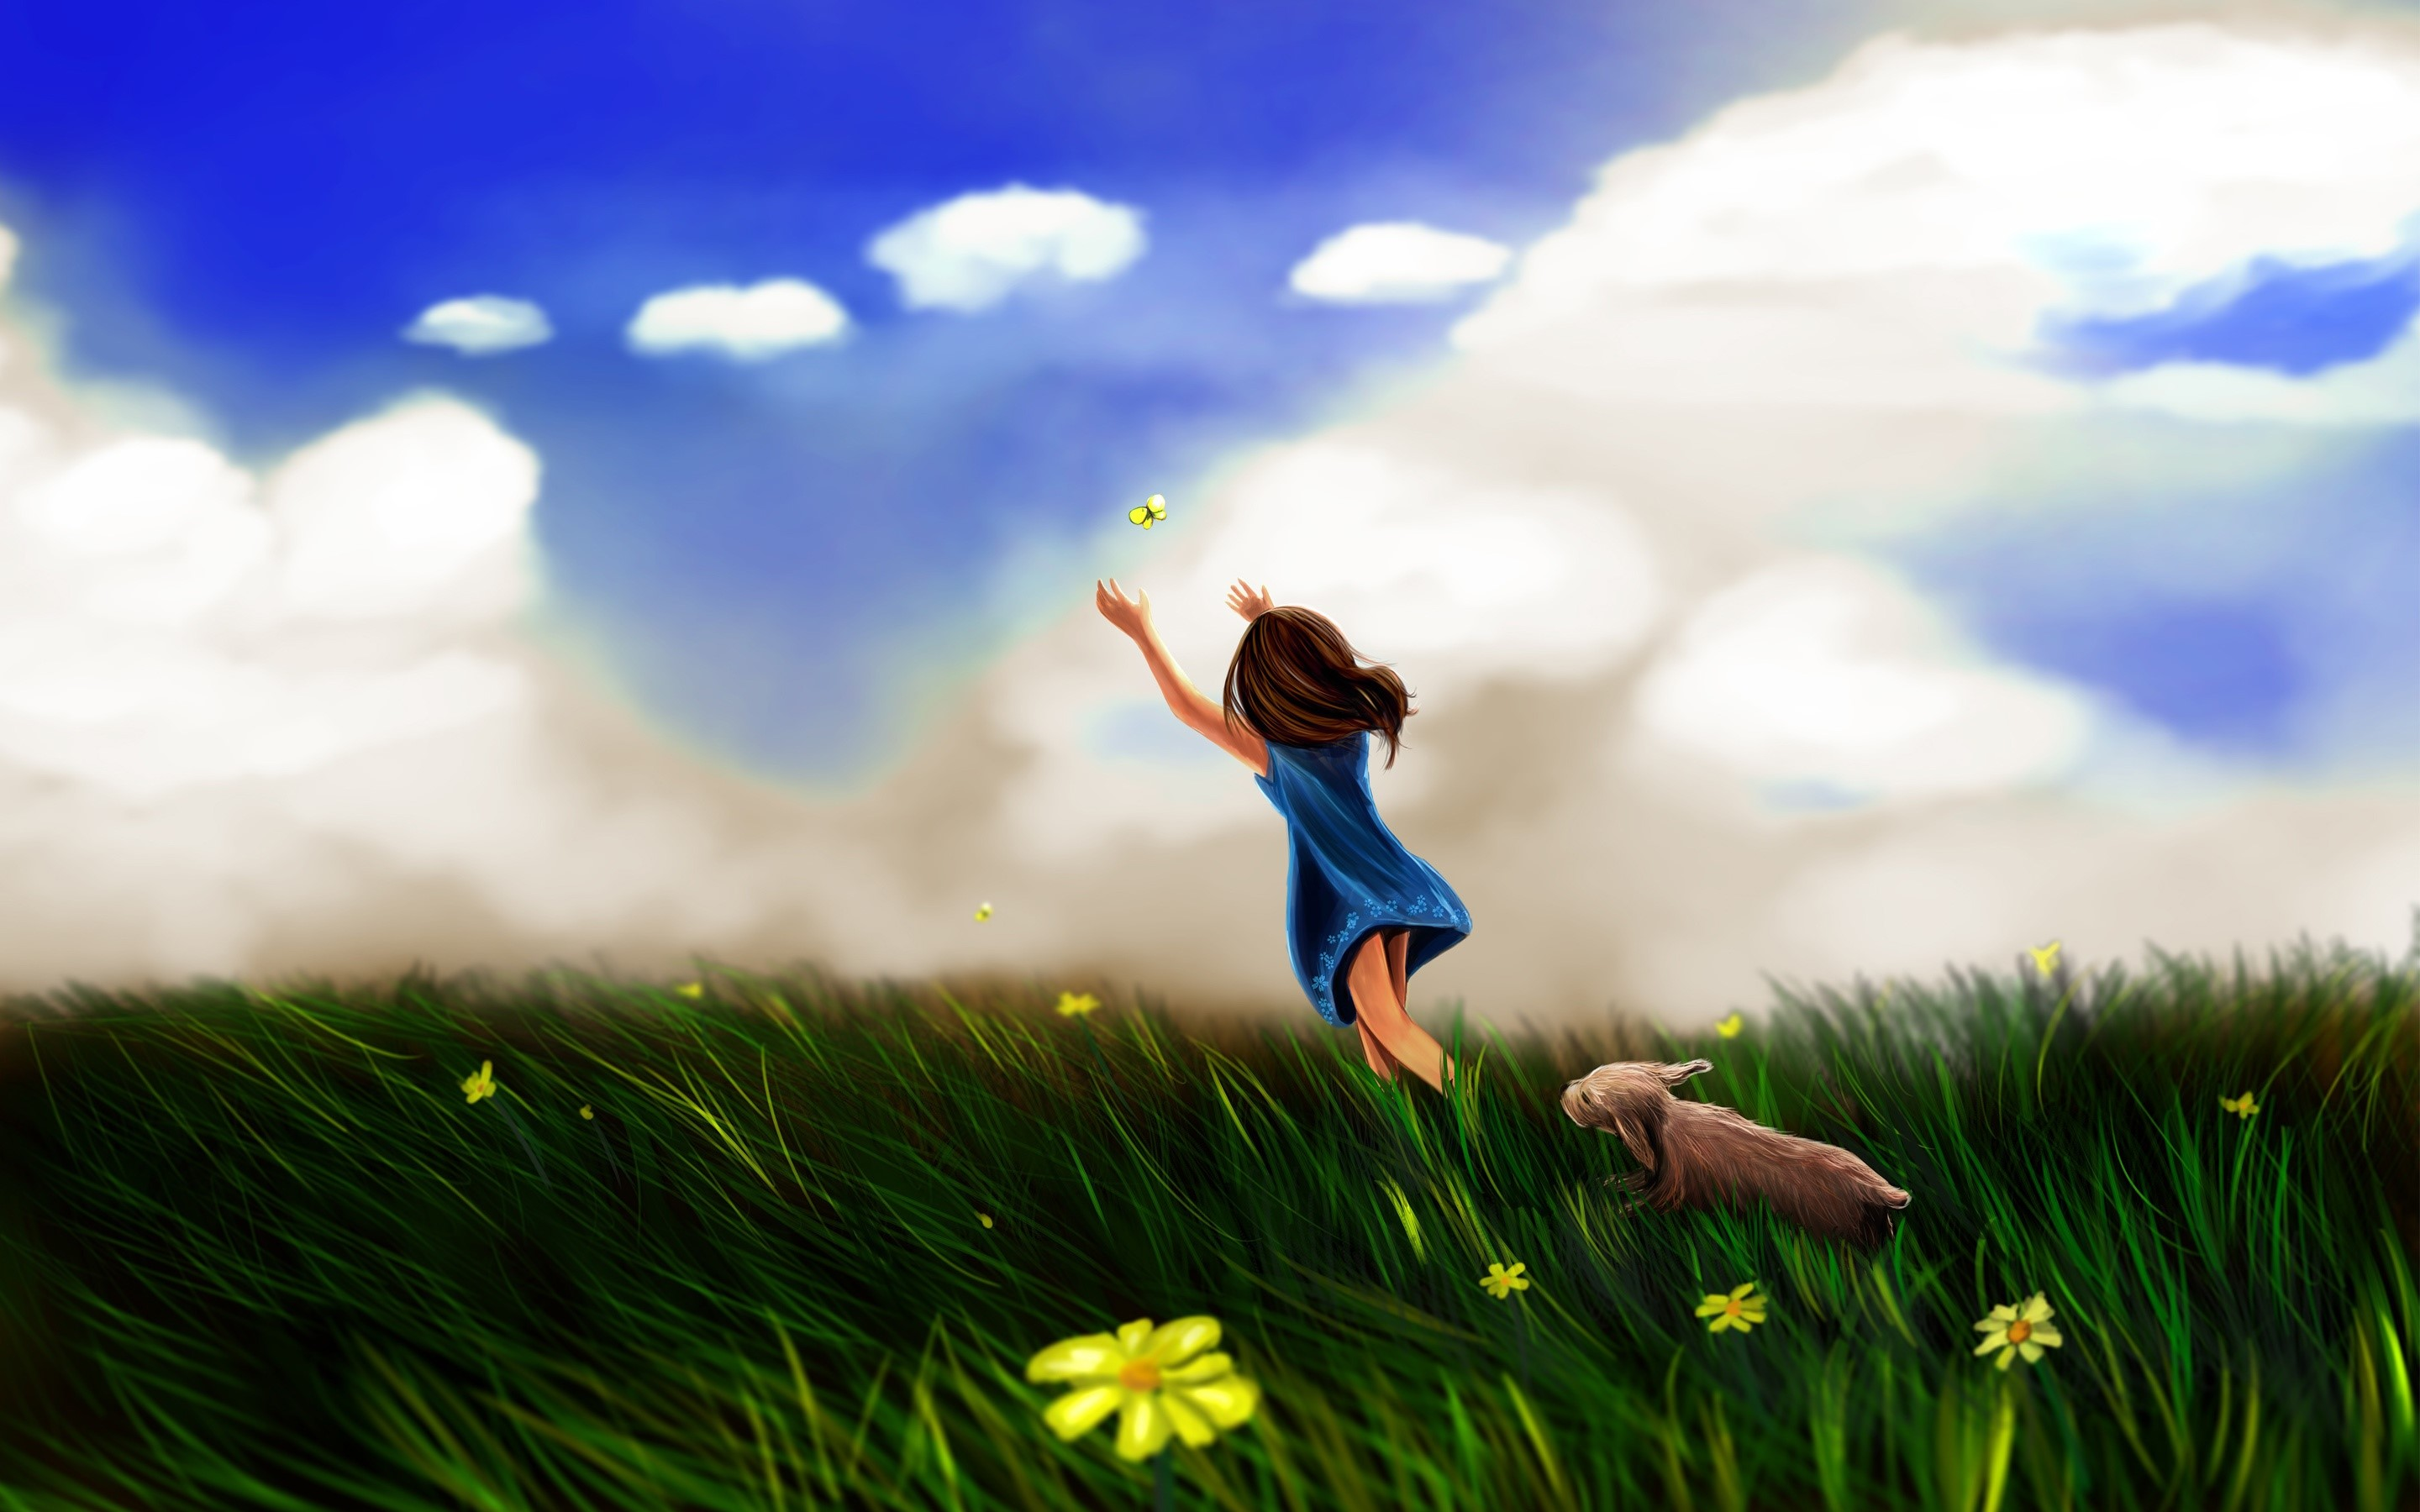 Wallpaper A girl chasing a butterfly